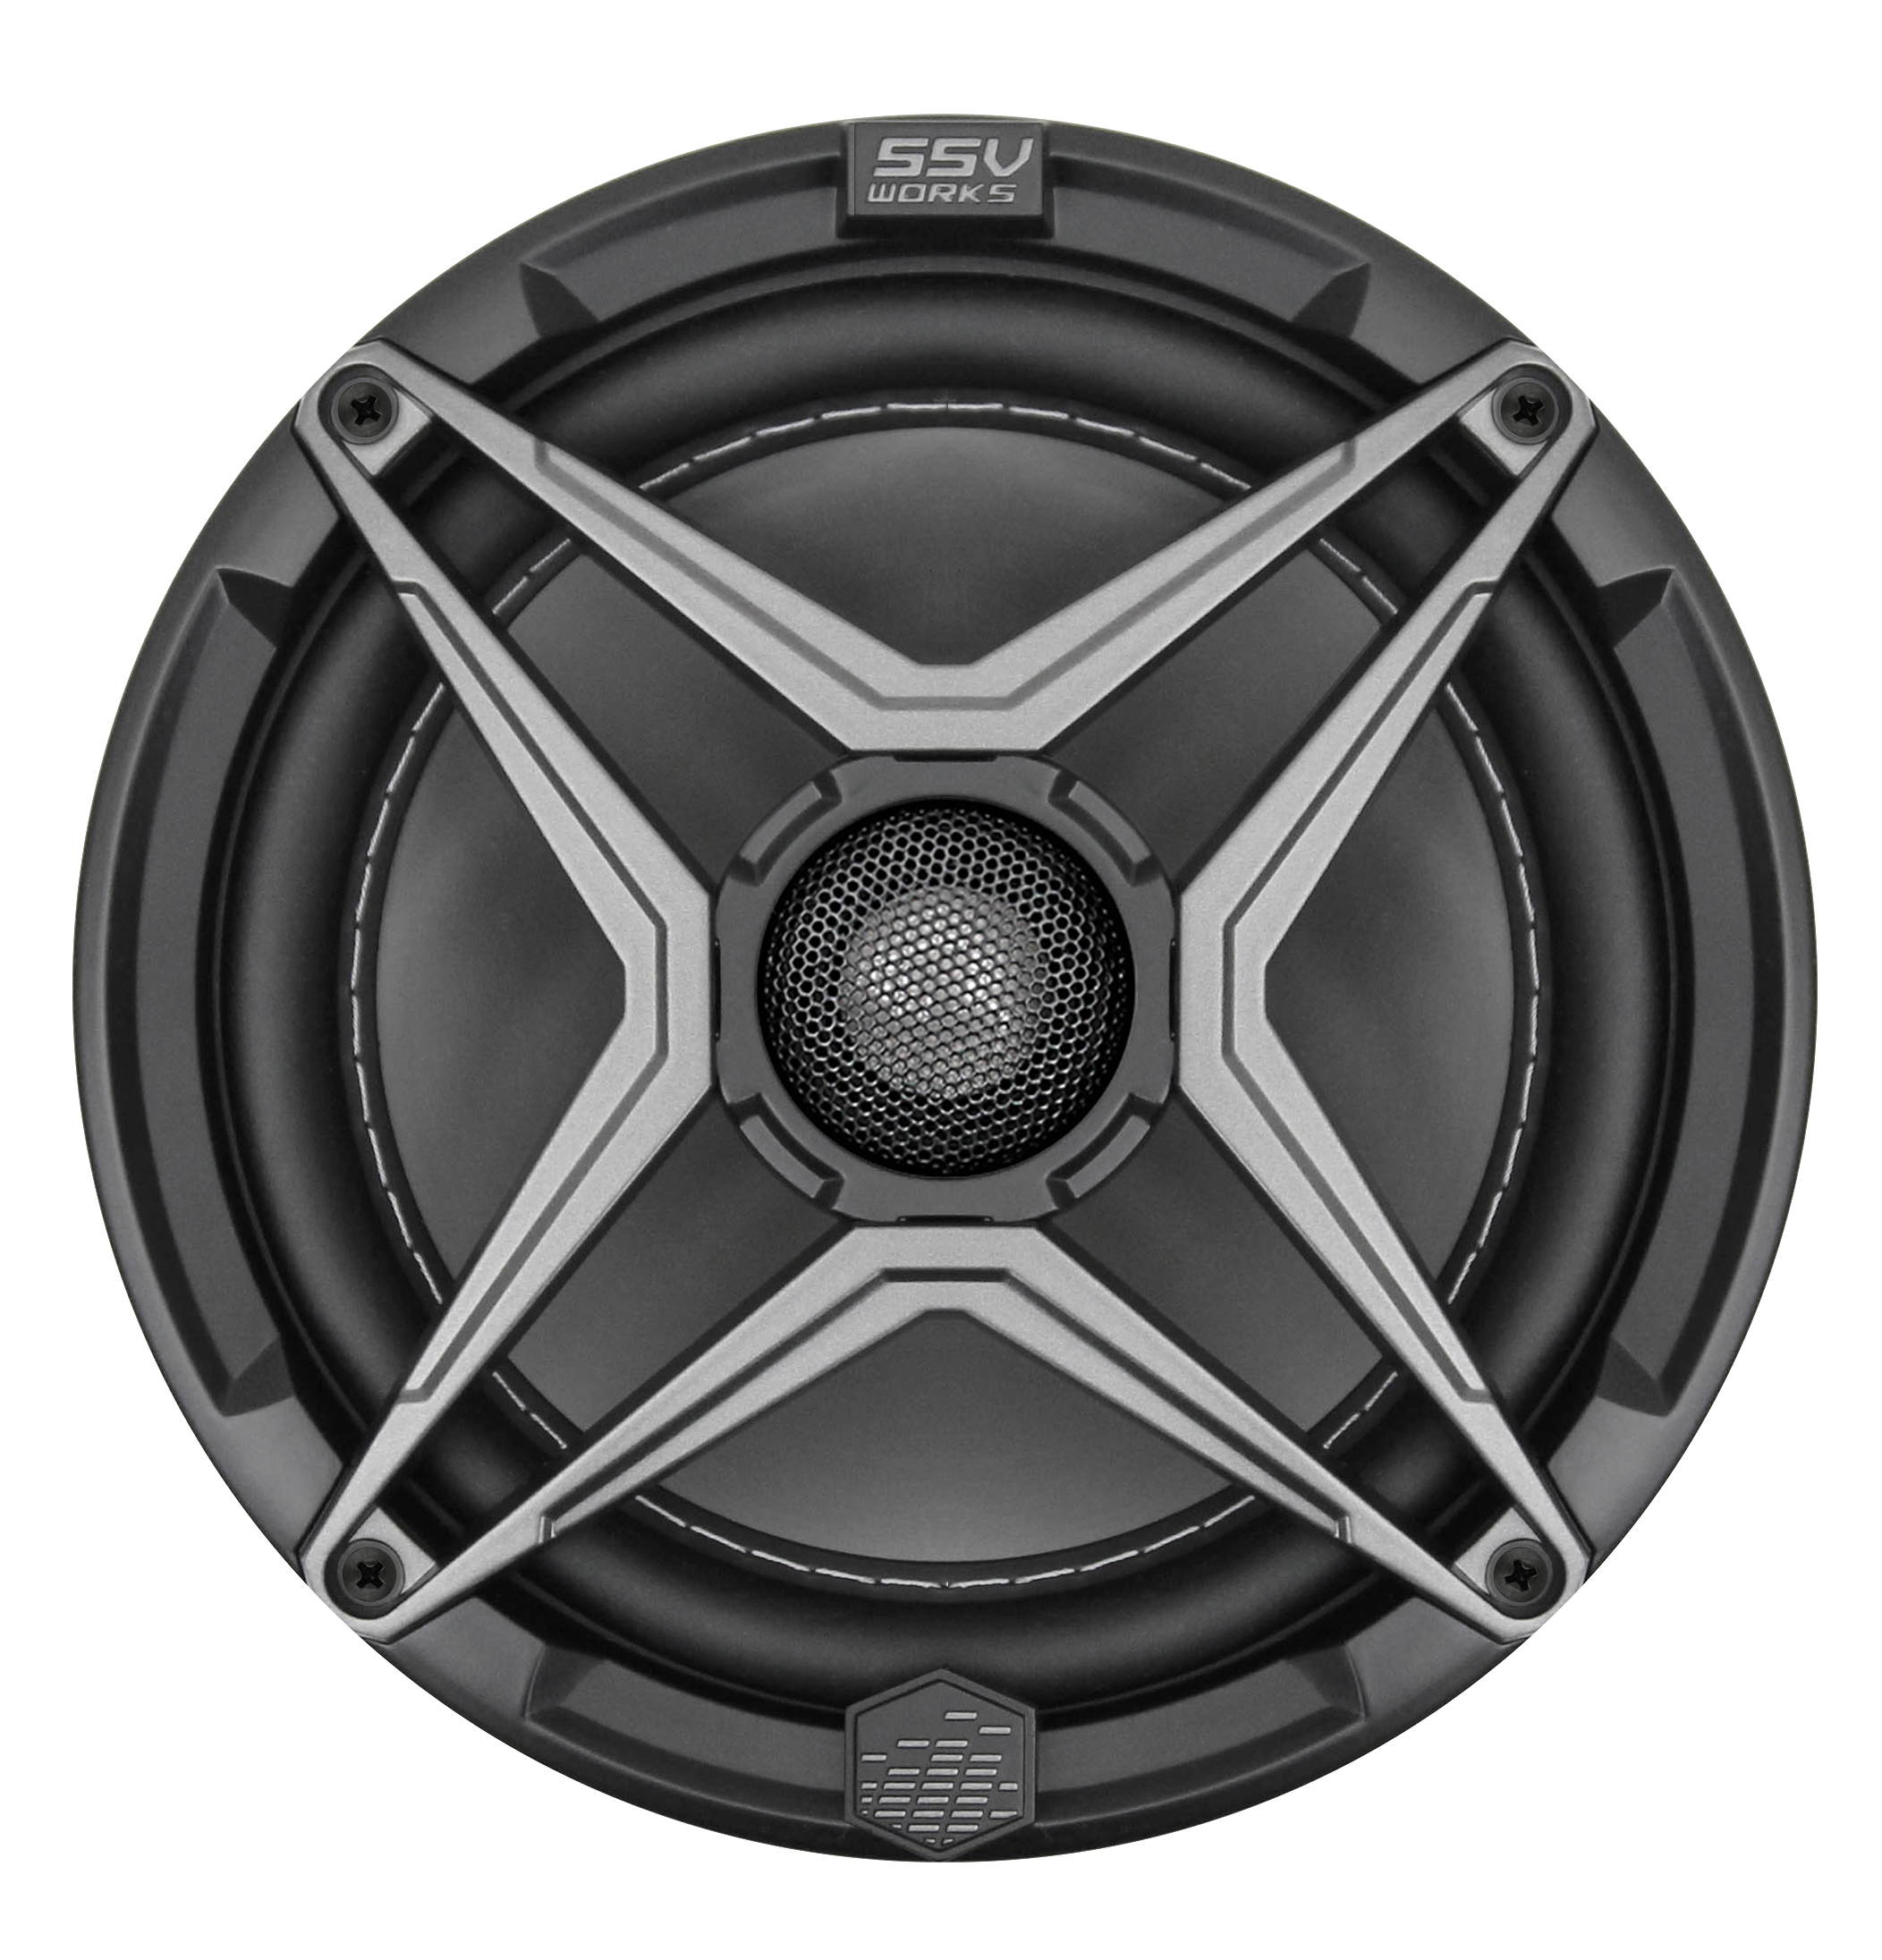 SSV Works 8 inch powersports speaker front 1